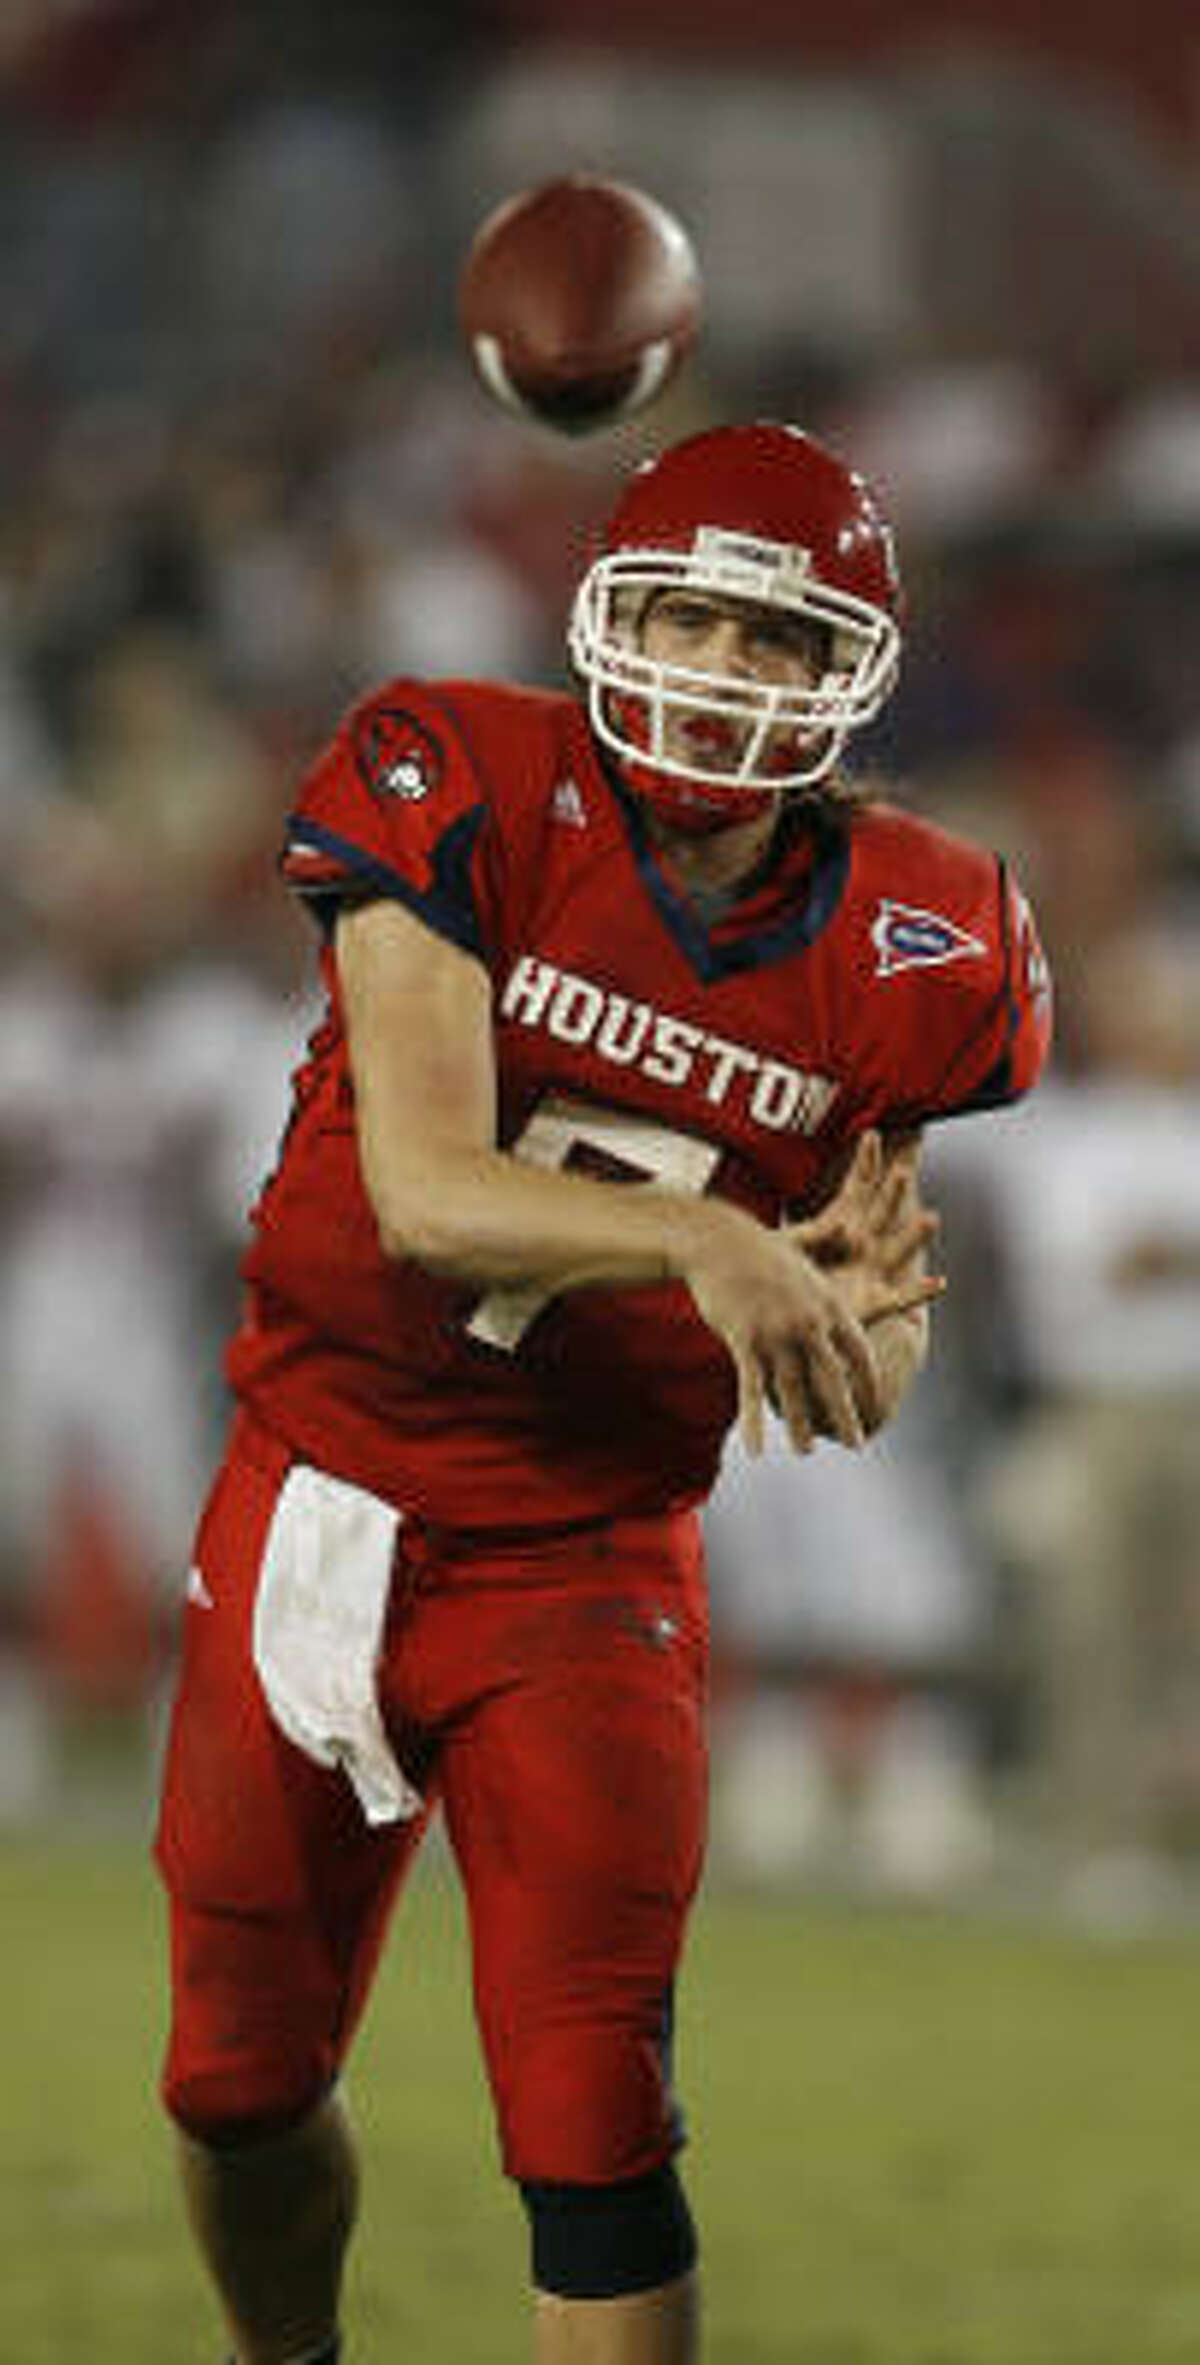 In the second game of the 2007 season against C-USA rival Tulane Green Wave, Keenum threw for 185 yards and a touchdown on 13-of-21 passing, leading Houston to a 34–10 win.